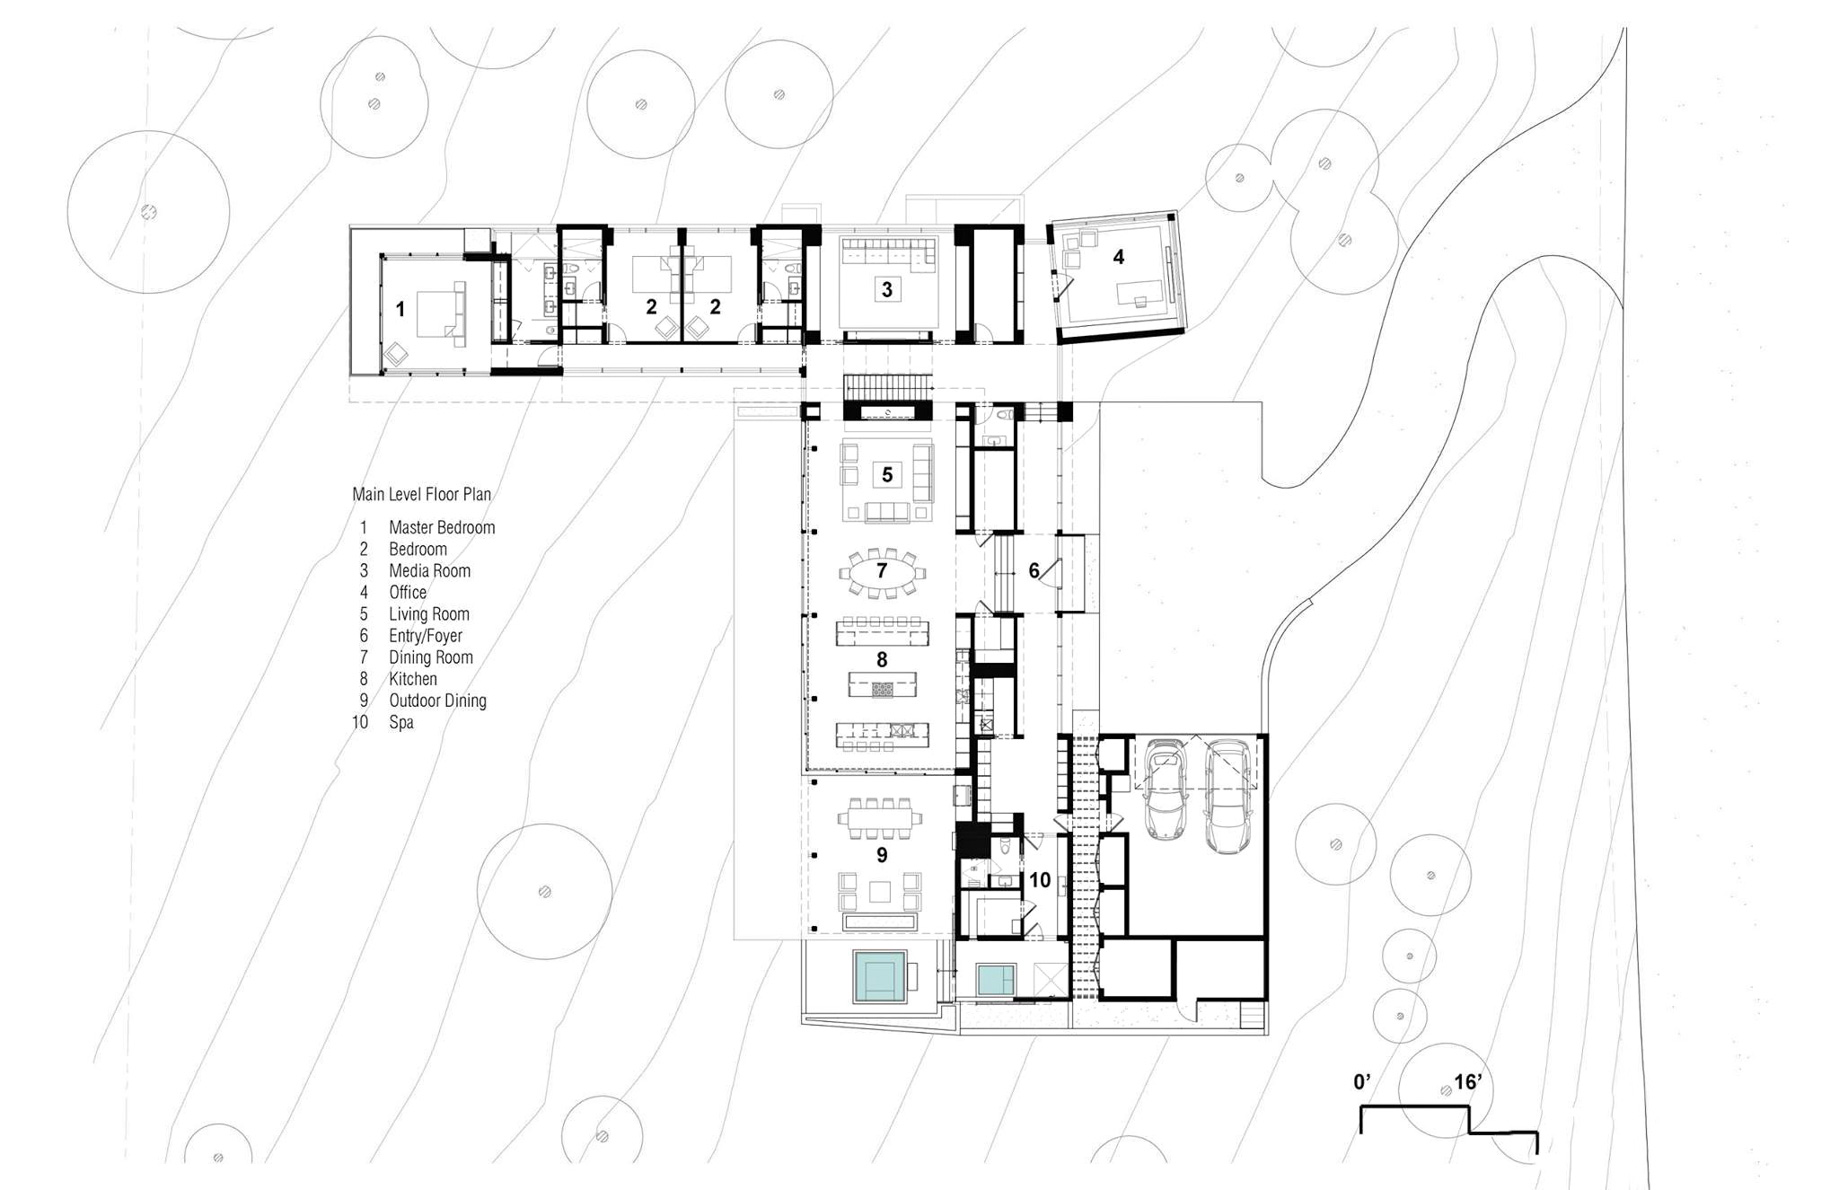 Main Level Floor Plan - Martis Camp 479 Luxury Residence - Truckee, CA, USA